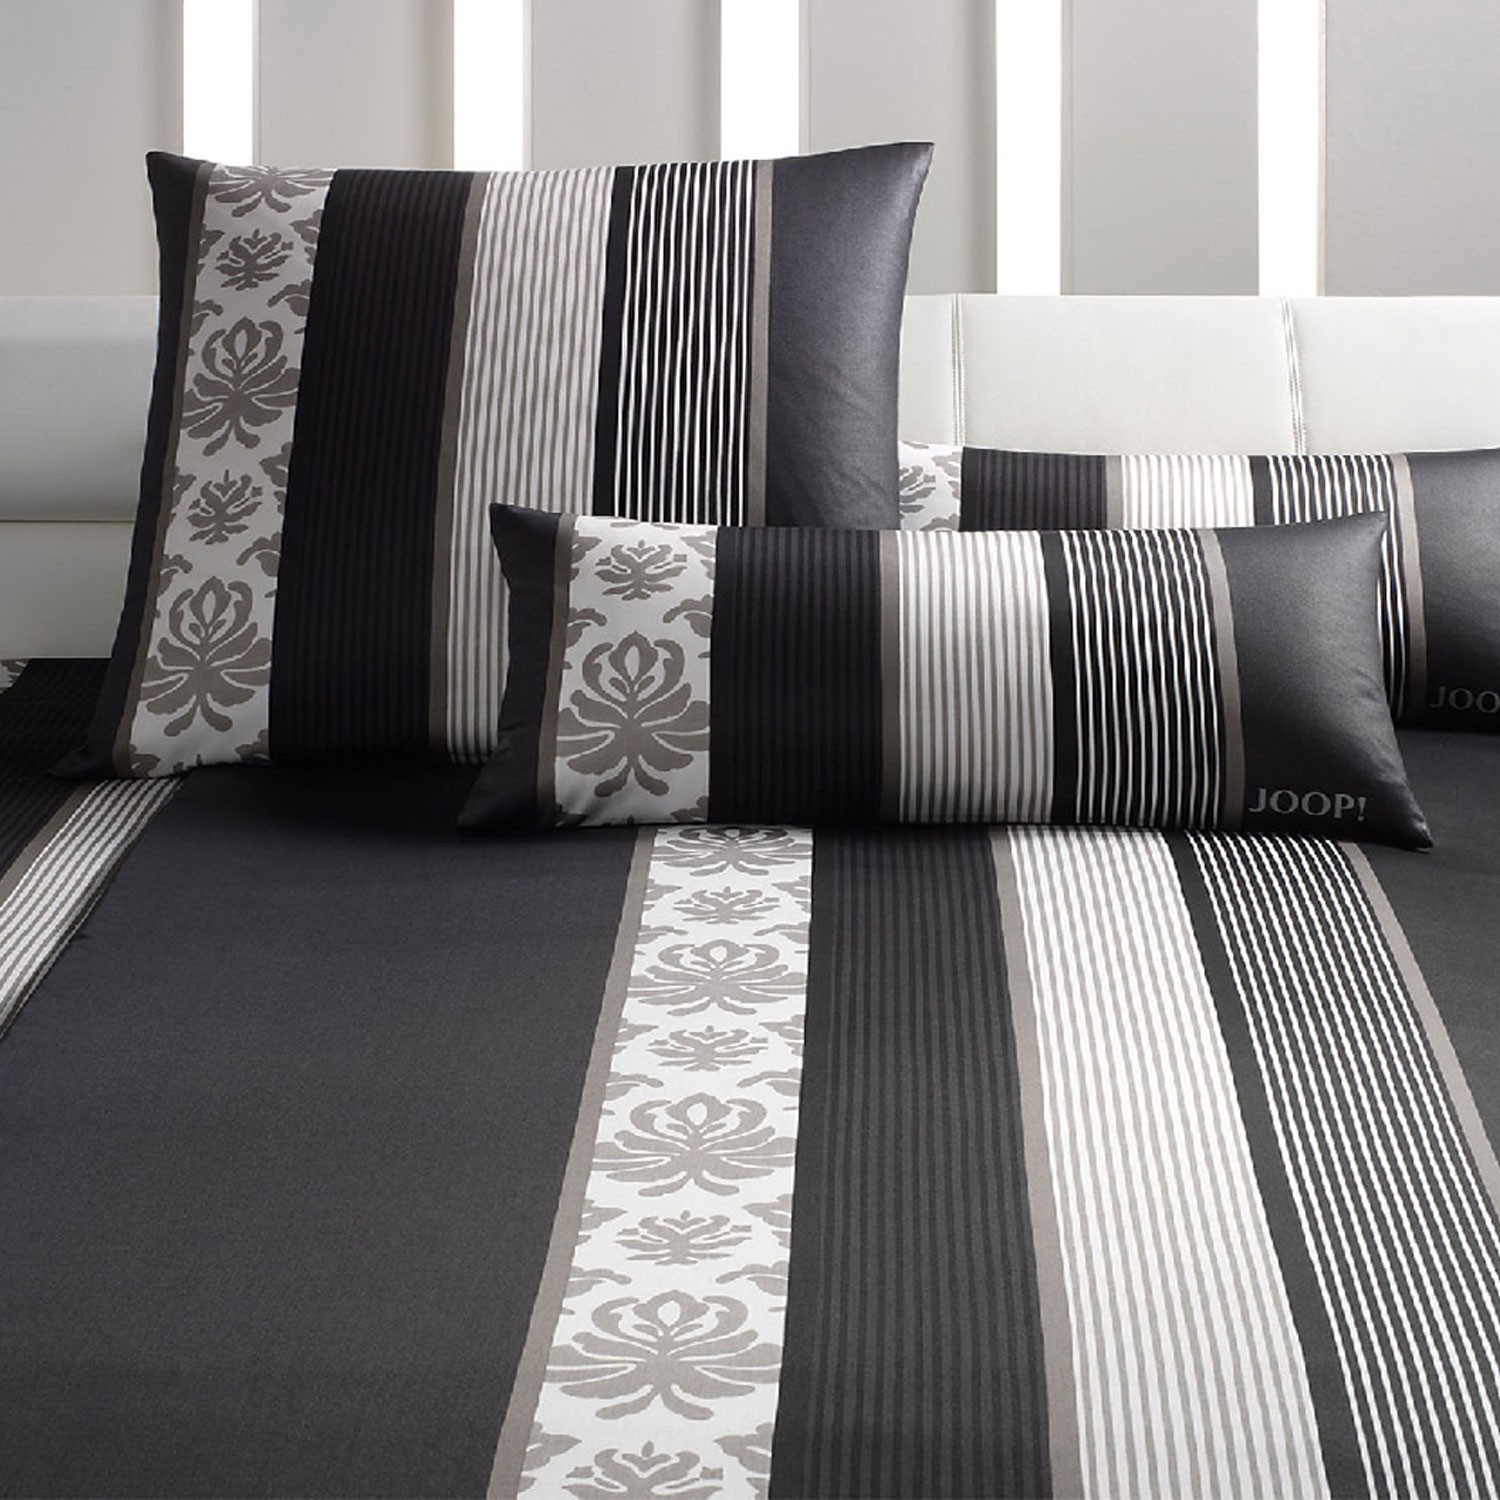 joop bettw sche ornament stripes 4022 09 schwarz 3303. Black Bedroom Furniture Sets. Home Design Ideas